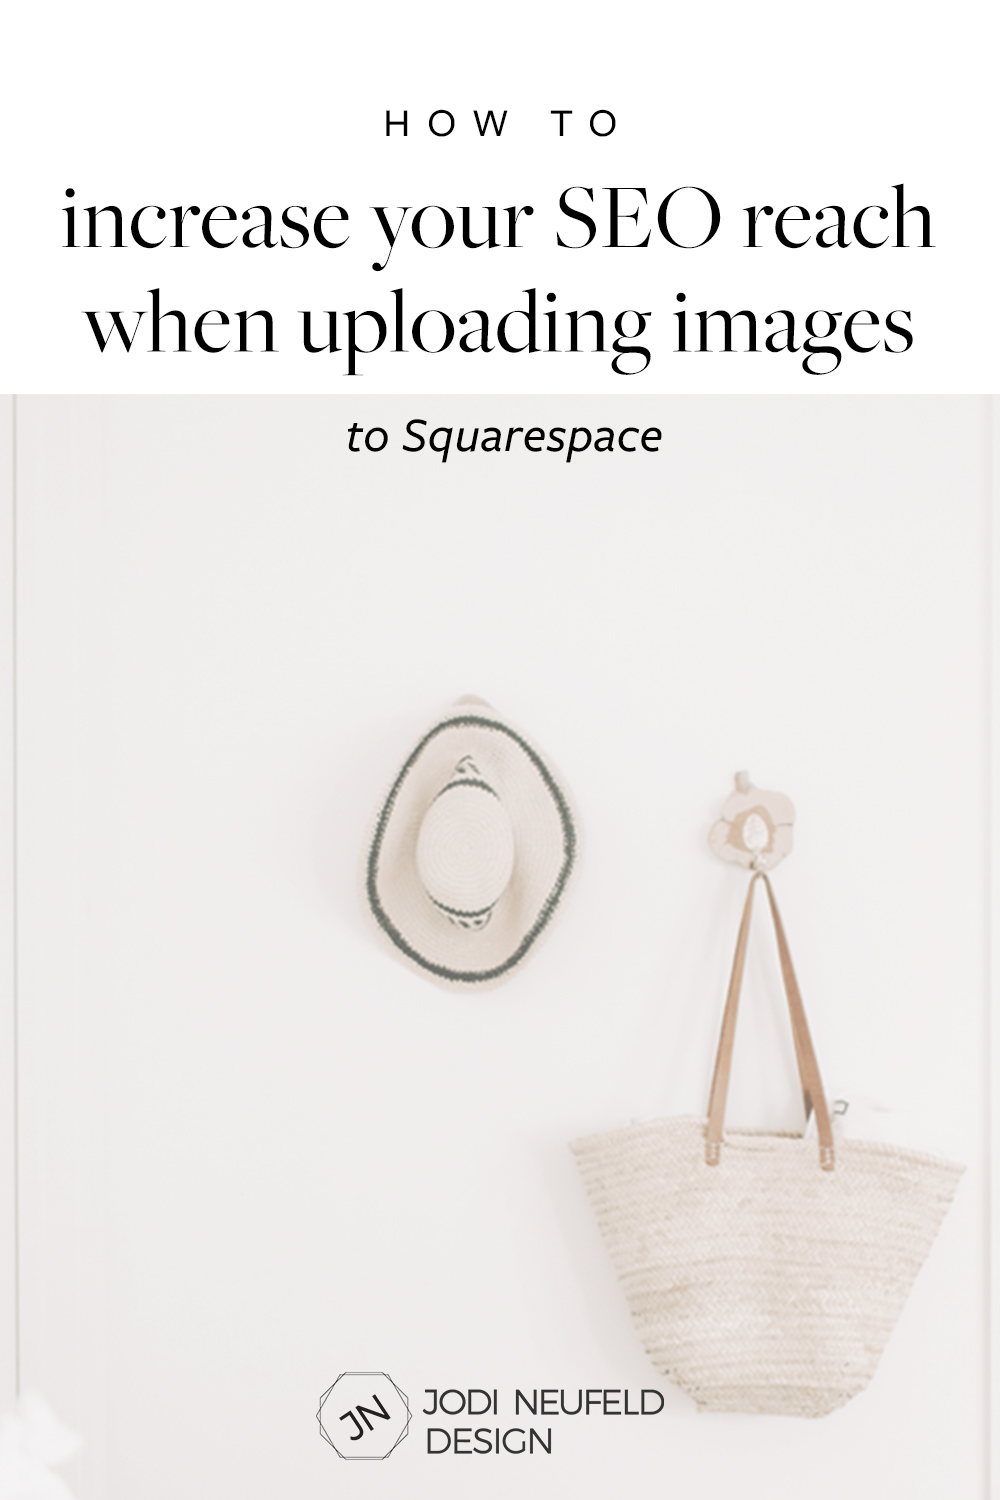 How to increase your SEO reach when uploading images to Squarespace by Jodi Neufeld Design #squarespace #webdesign